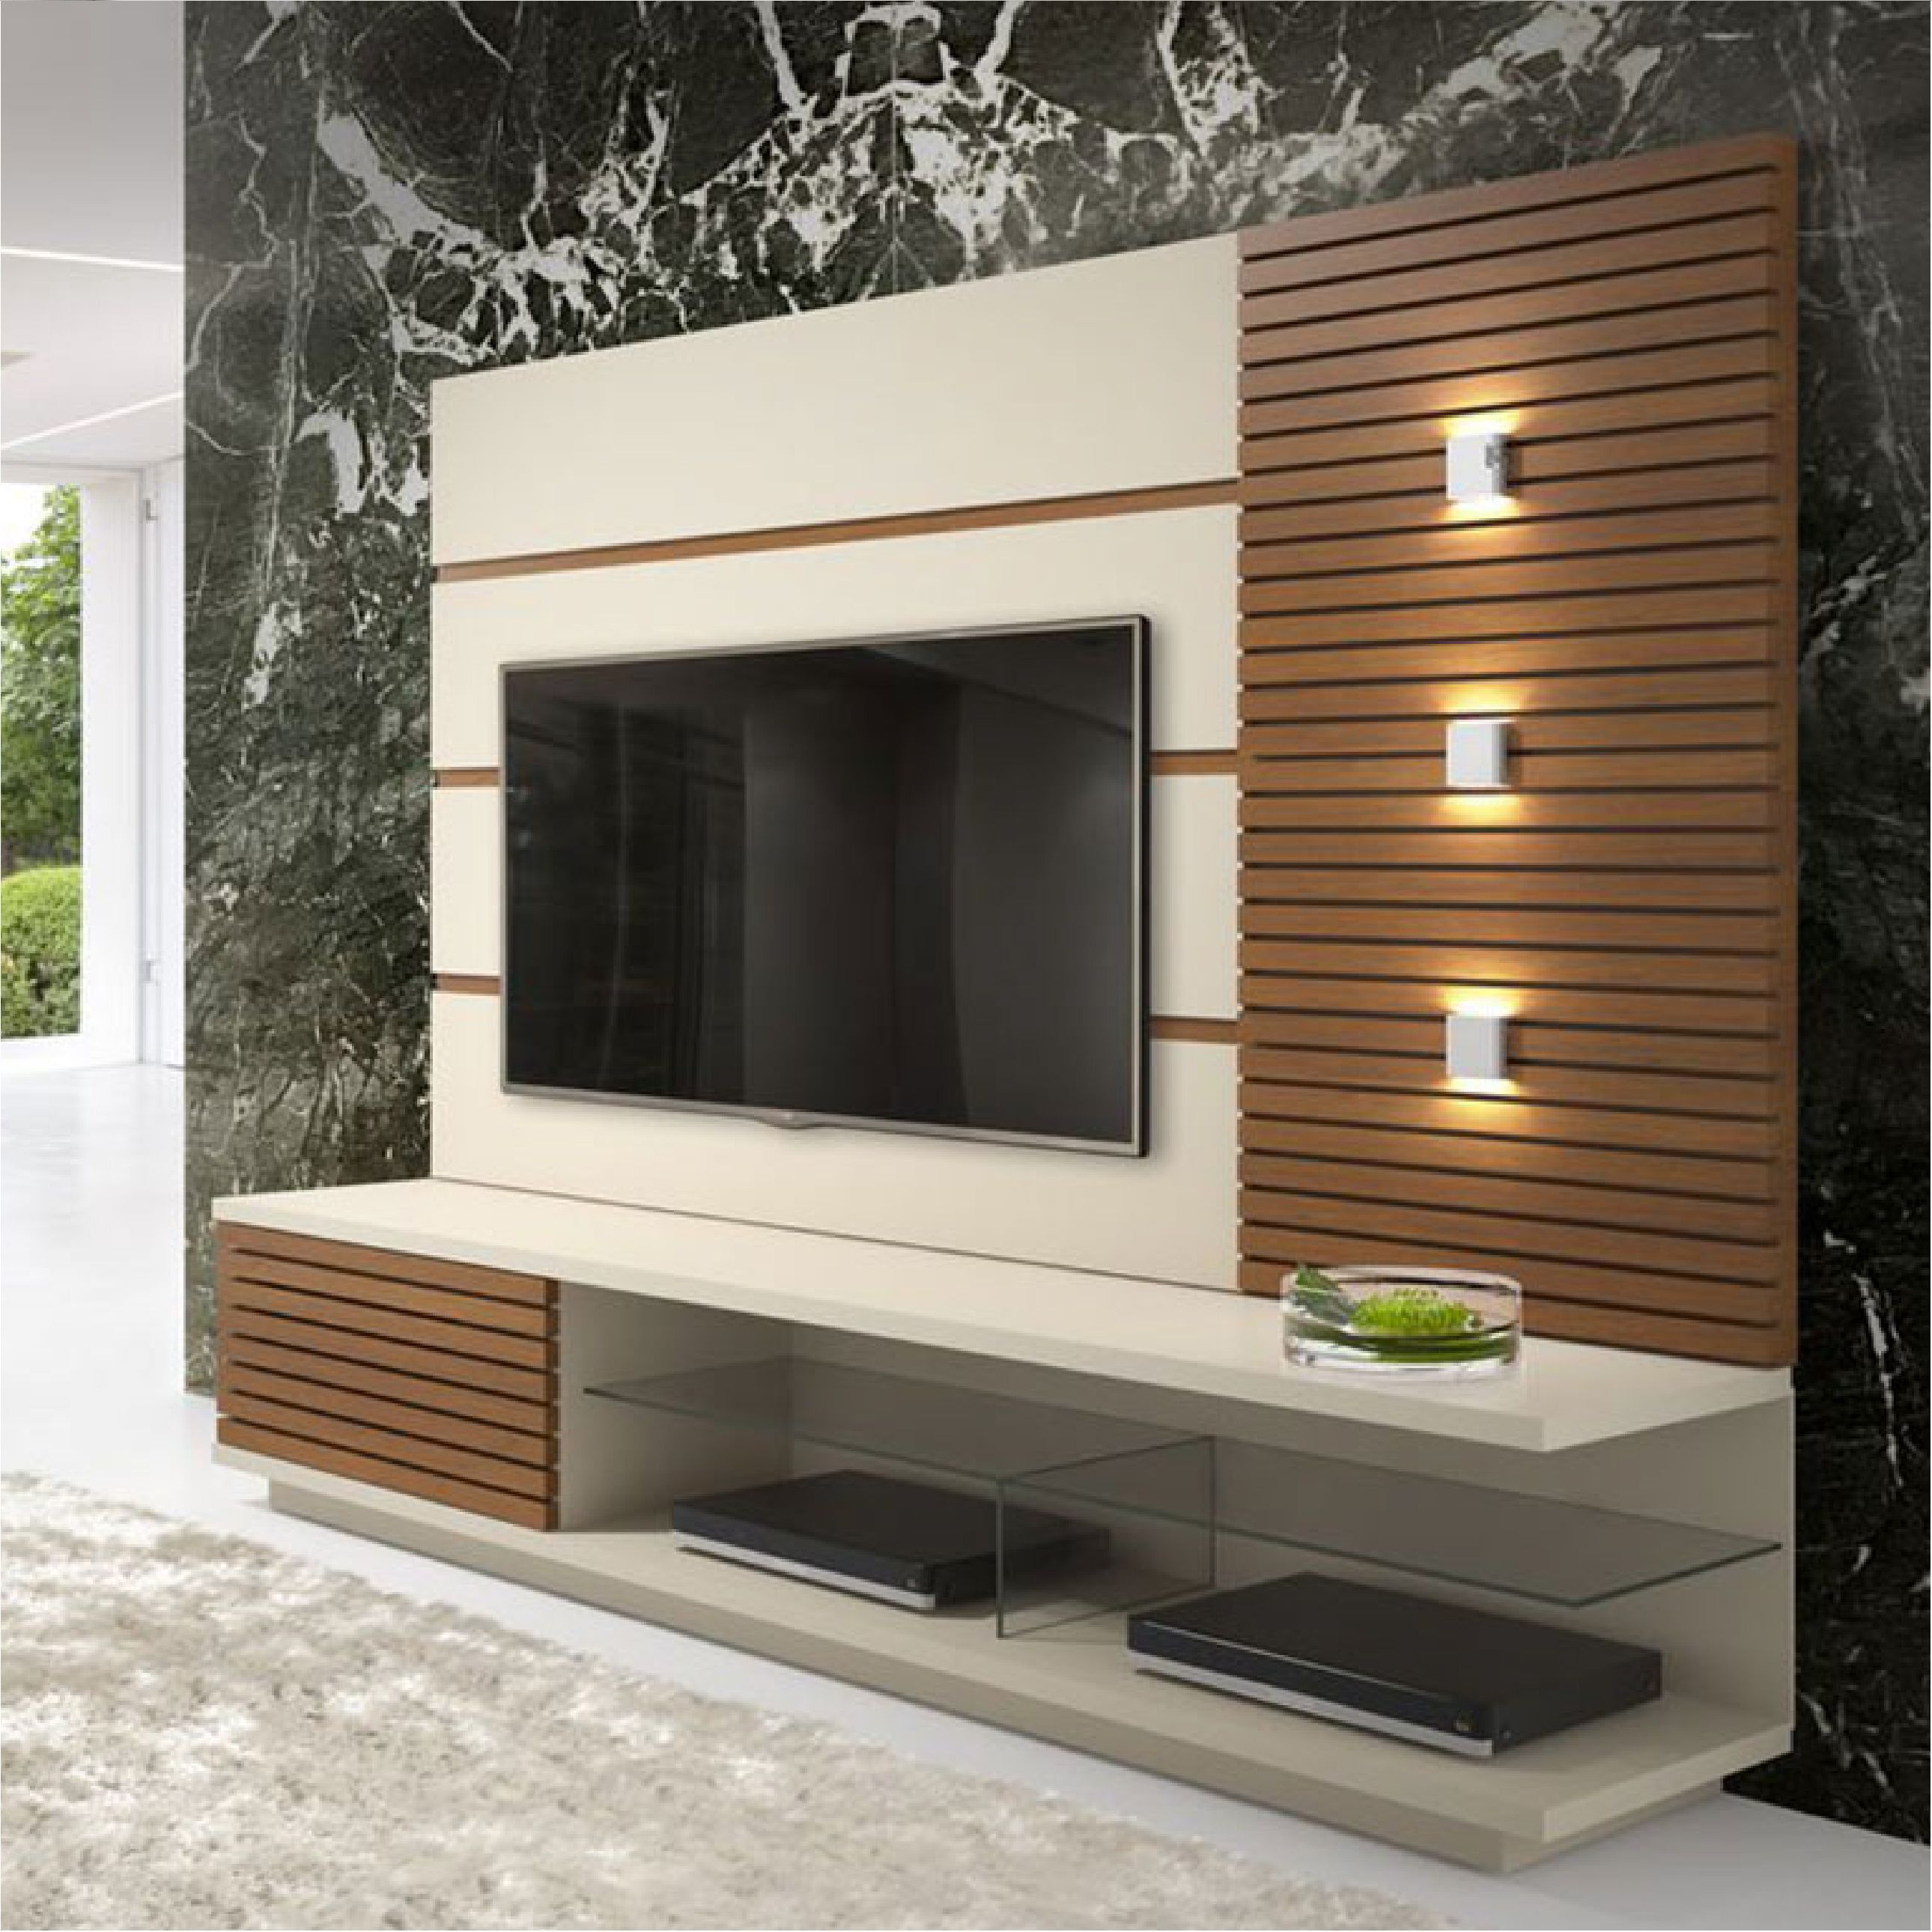 Wall Mirrors For Living Room Simple Living Room Ideas Christmas Living Room D Chris Modern Tv Wall Units Living Room Tv Unit Designs Living Room Tv Unit